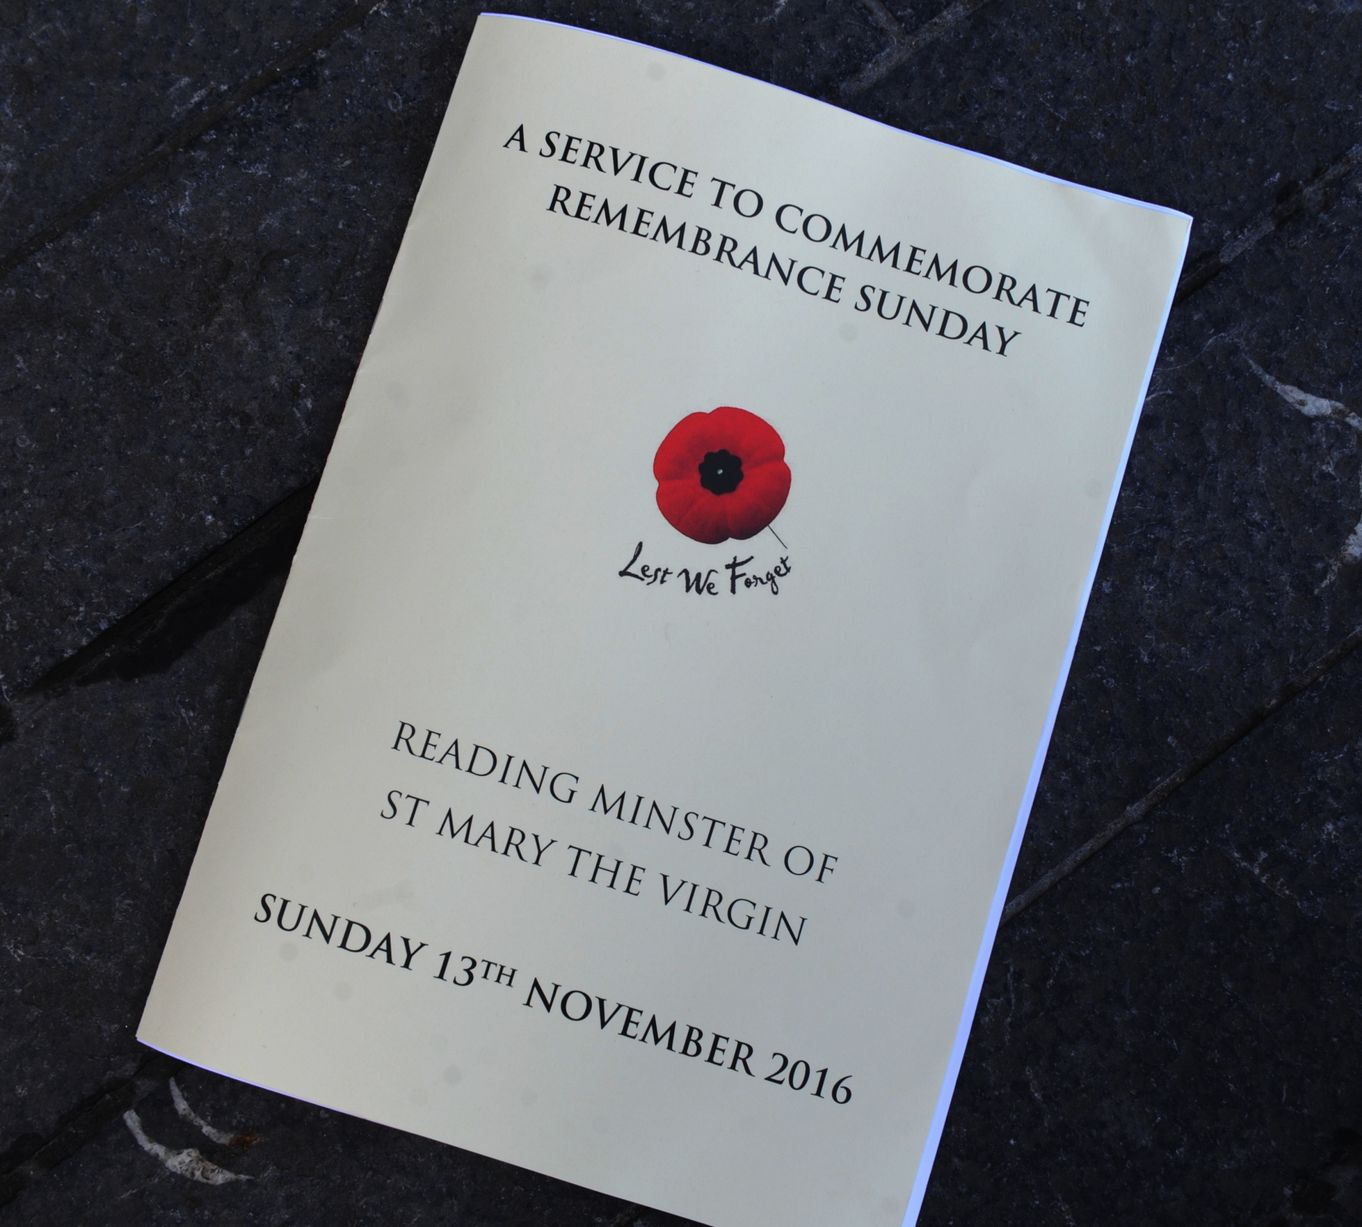 remembrance sunday readings